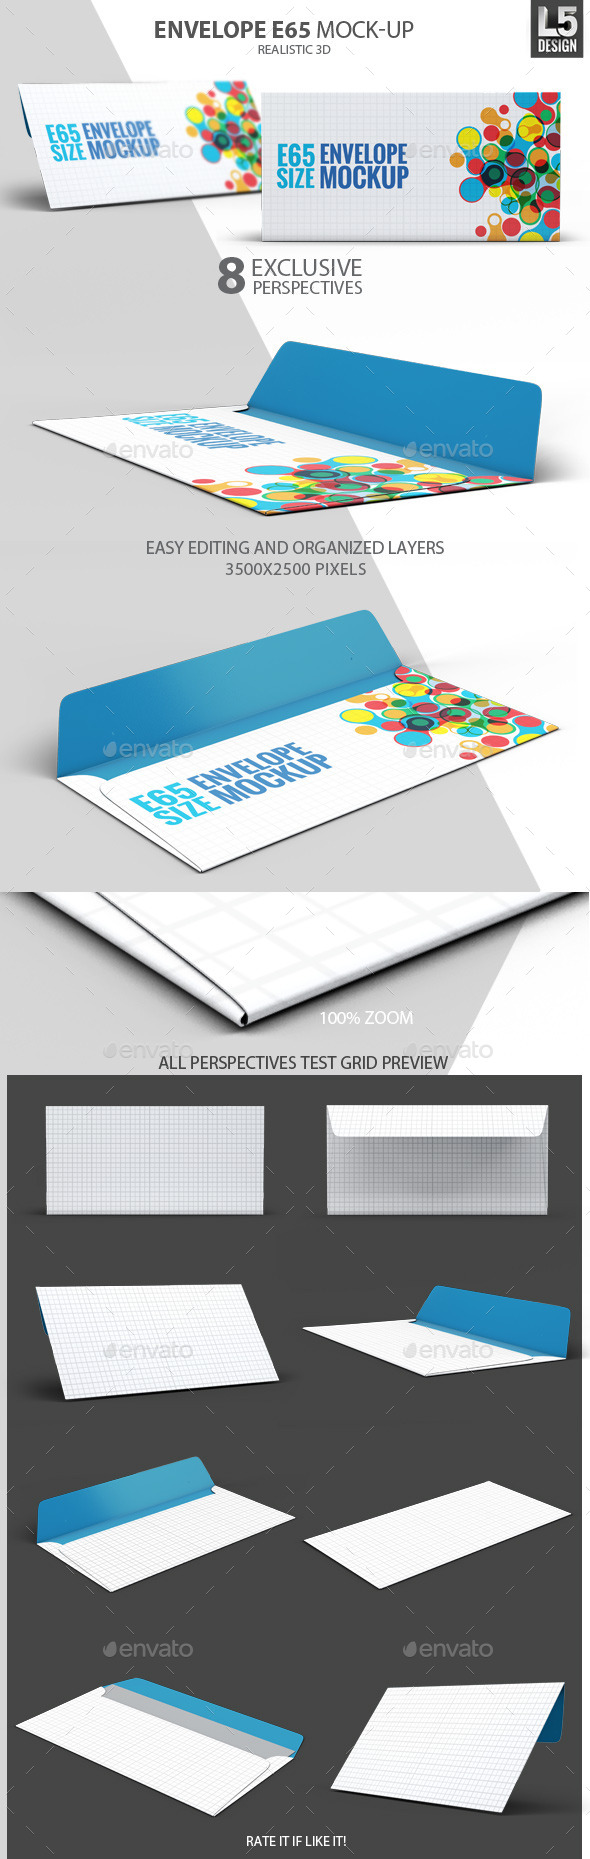 Envelope E65 Mock-Up - Miscellaneous Product Mock-Ups